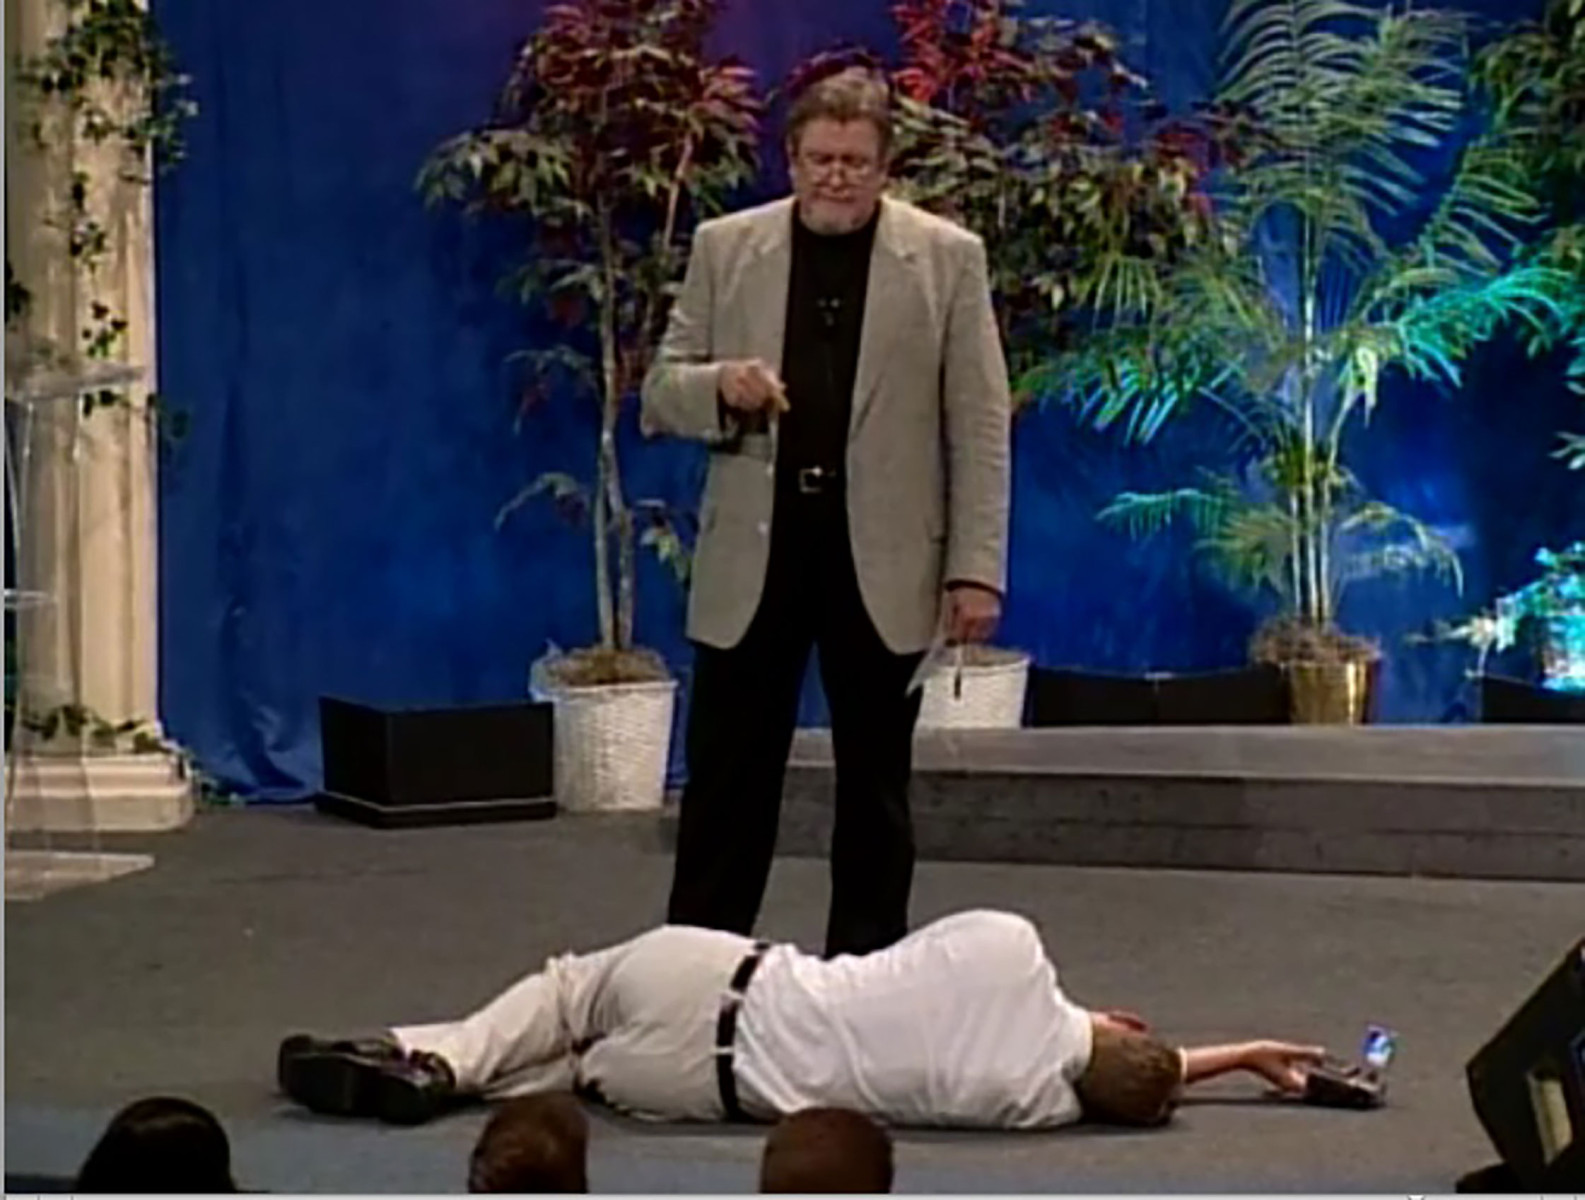 (EN) The Holy Artwork (2001) A Texan televangelist performs his weekly show, preaching about the holy works, with Jankowski lying at his feet, questioning prayer and performance, art and belief.